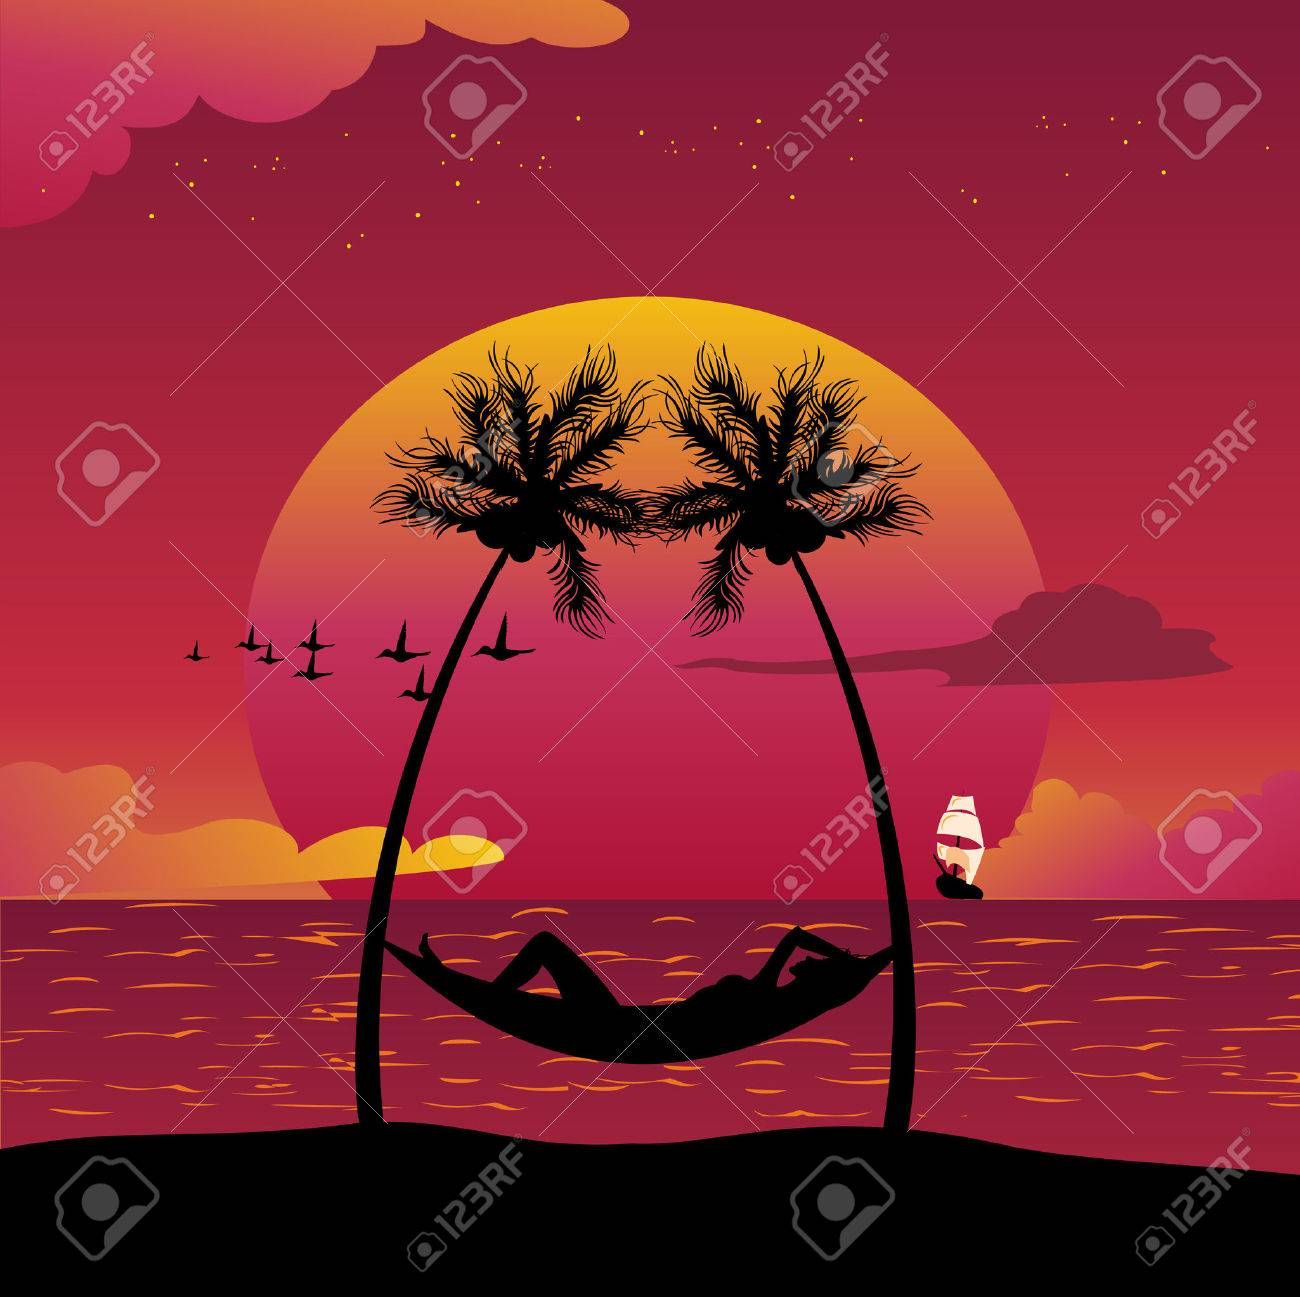 Vector illustration of a girl lying down in a hammock in a paradise island. Stock Vector - 5082475